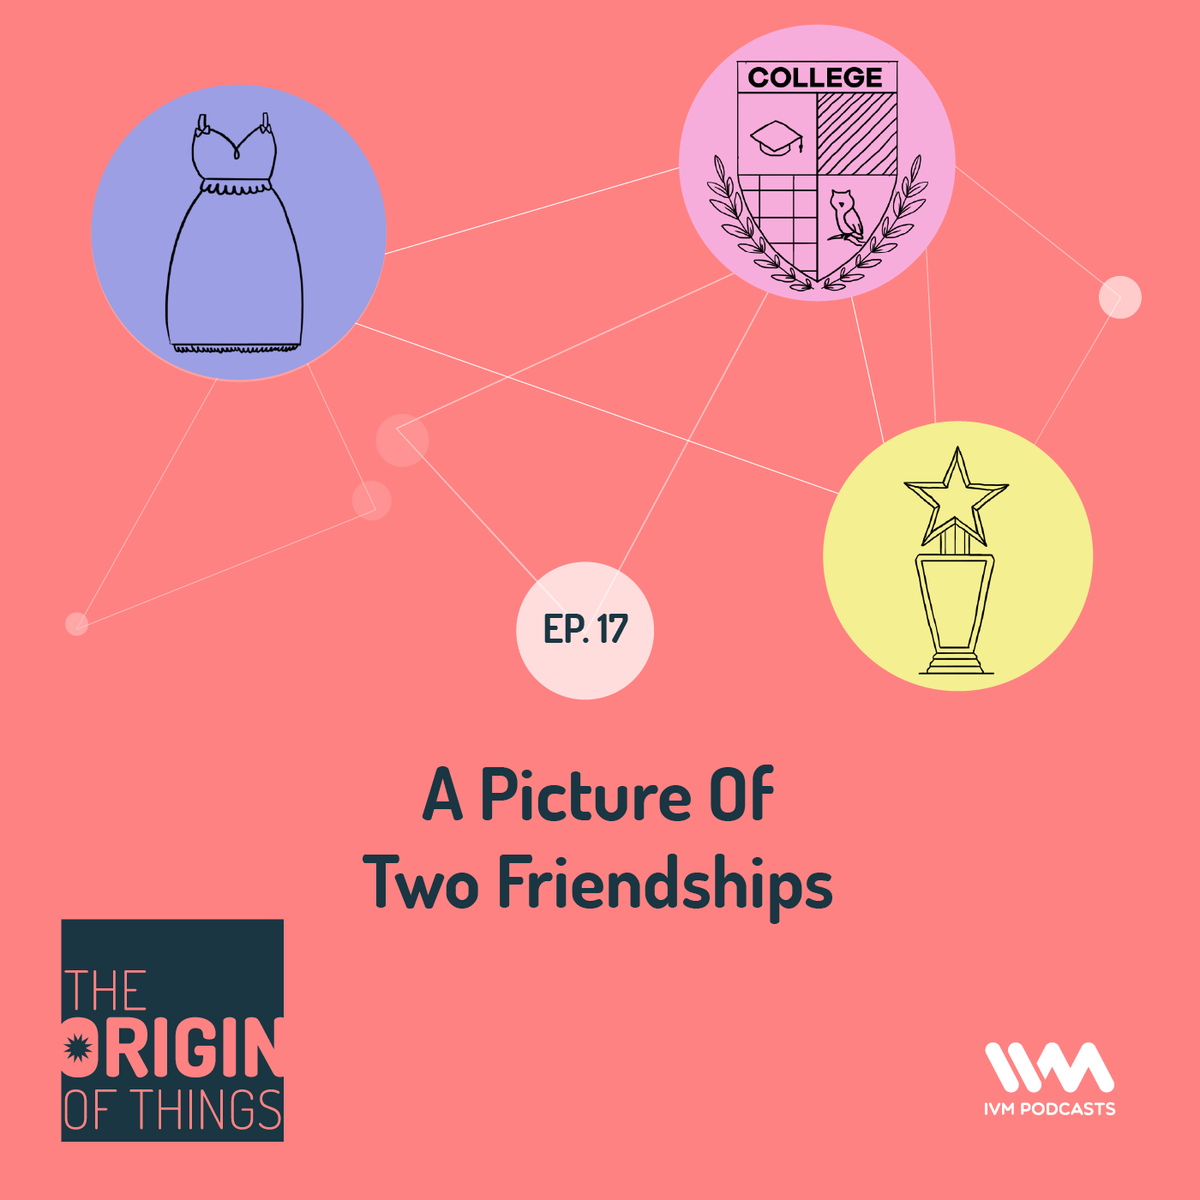 Ep. 17: A Picture Of Two Friendships